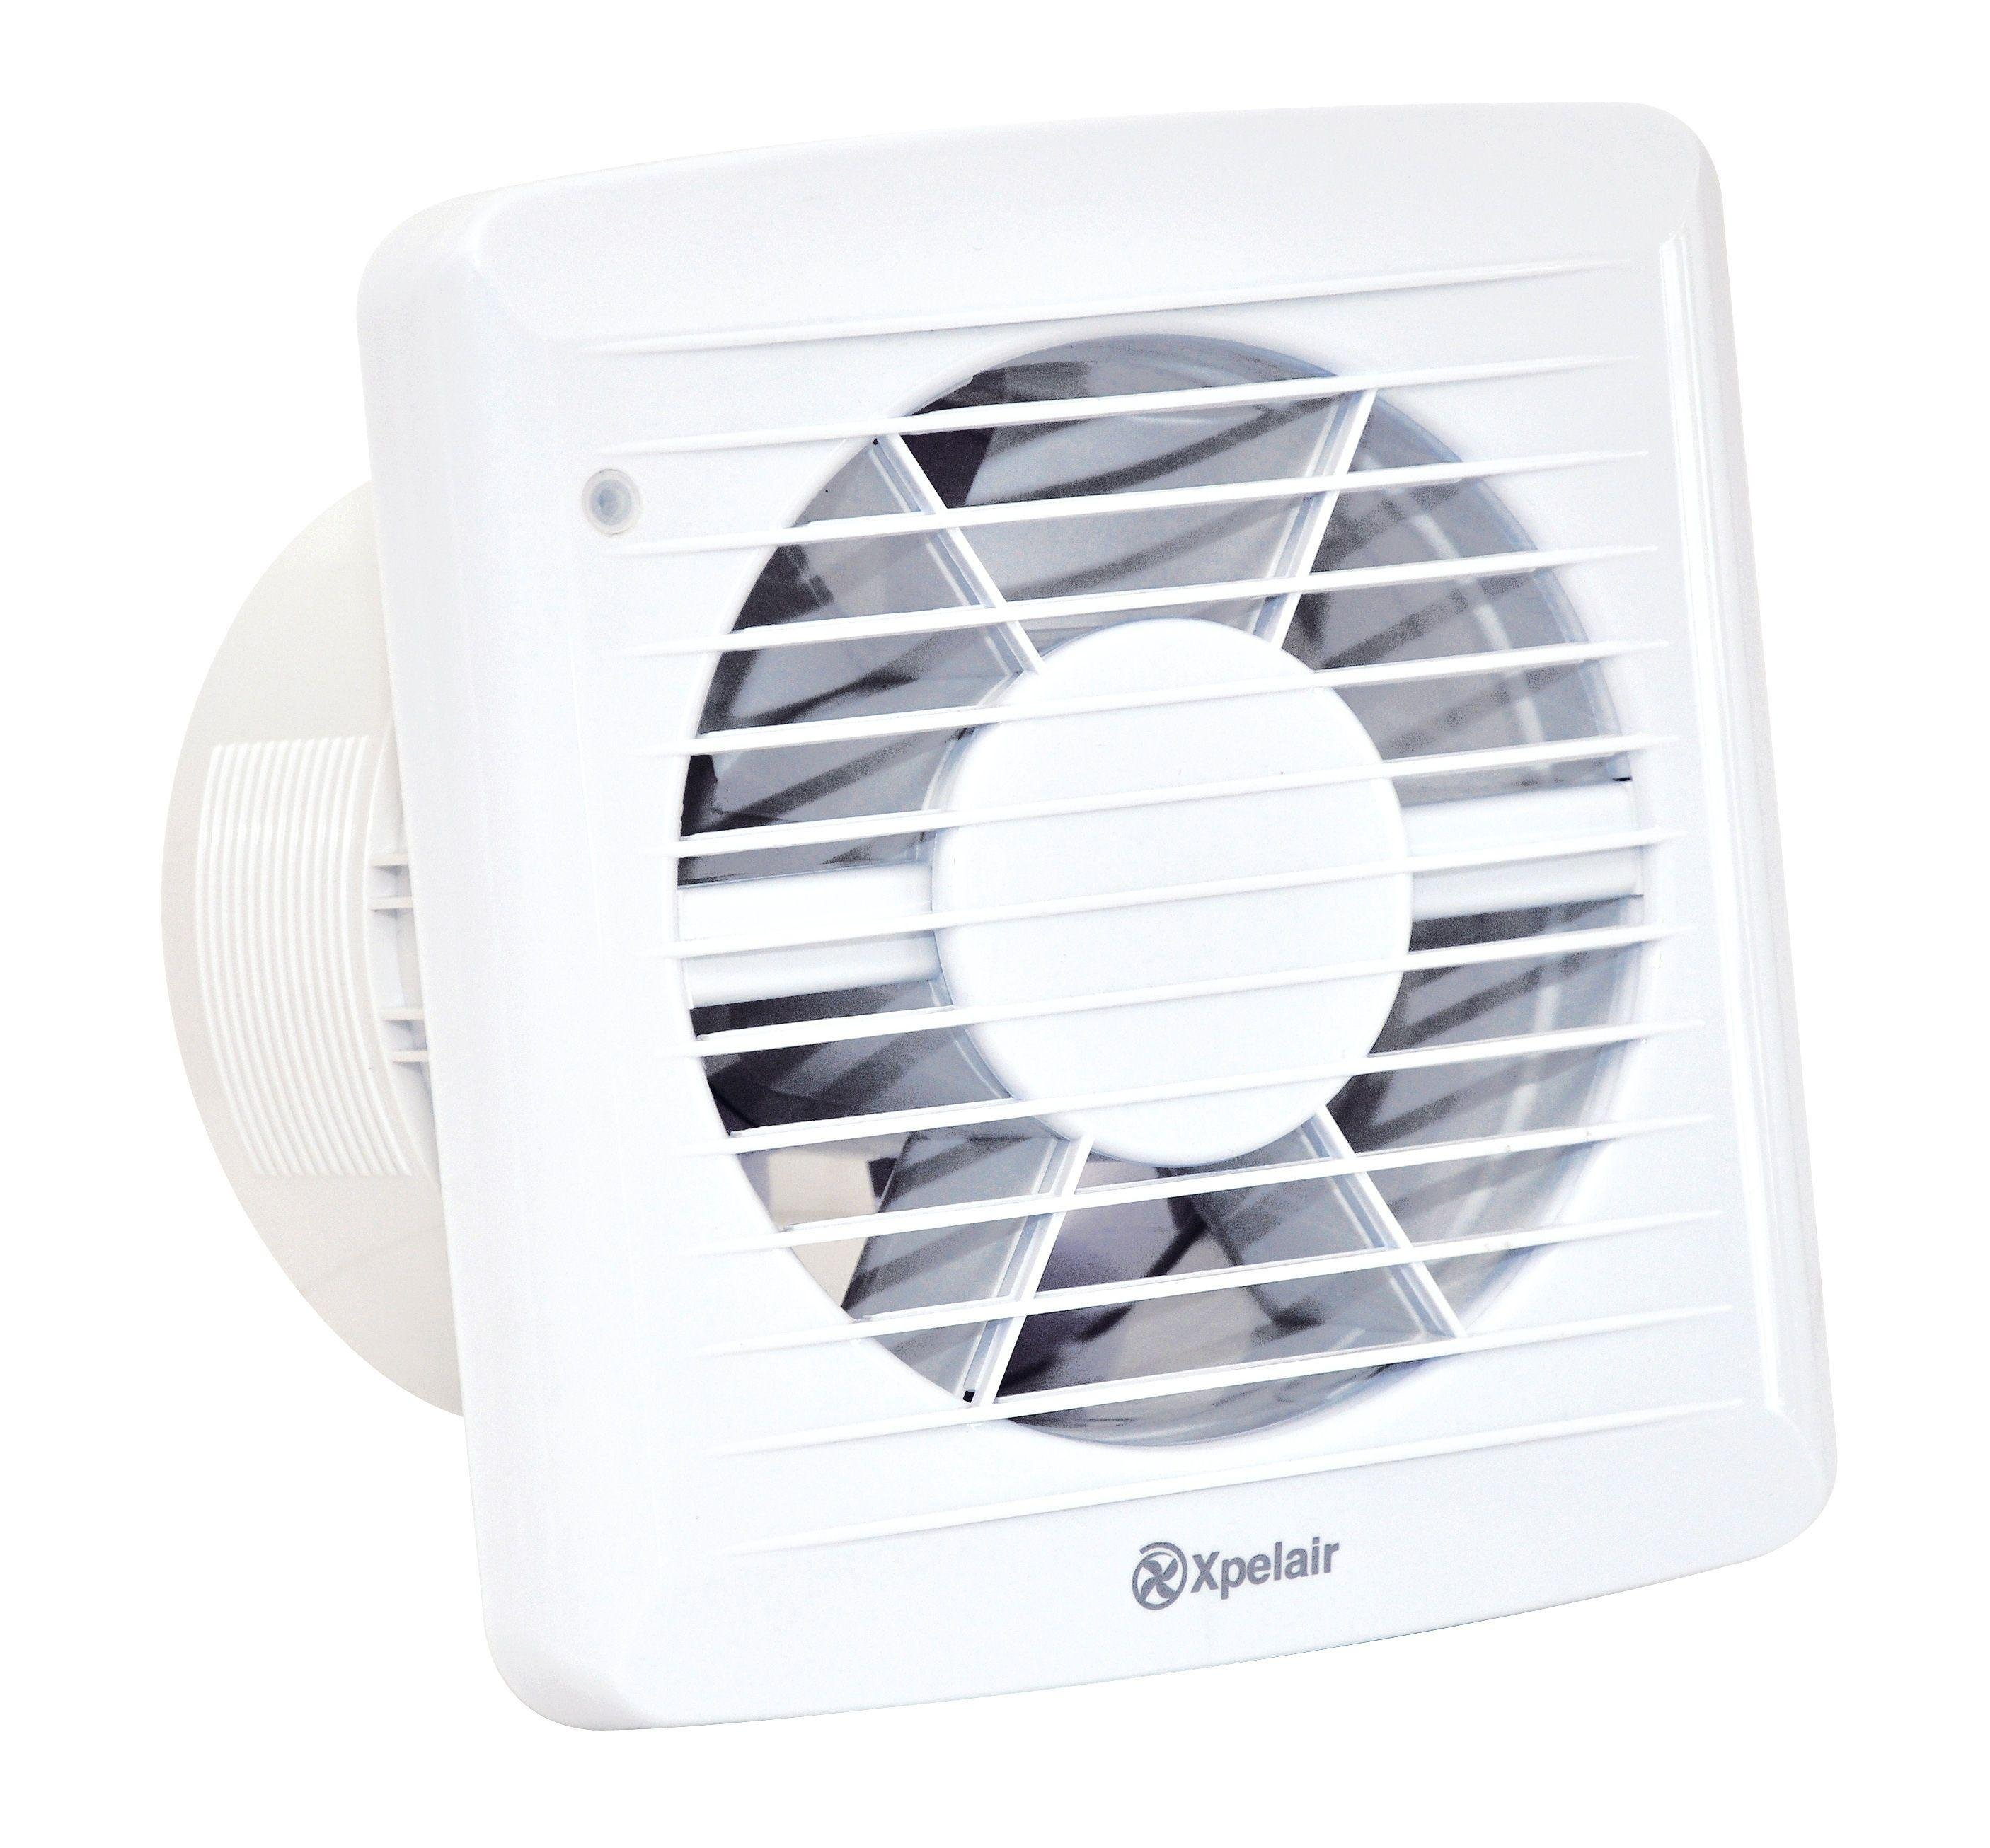 Xpelair 6 Inch Kitchen Extractor Fan With Humidistat Timer